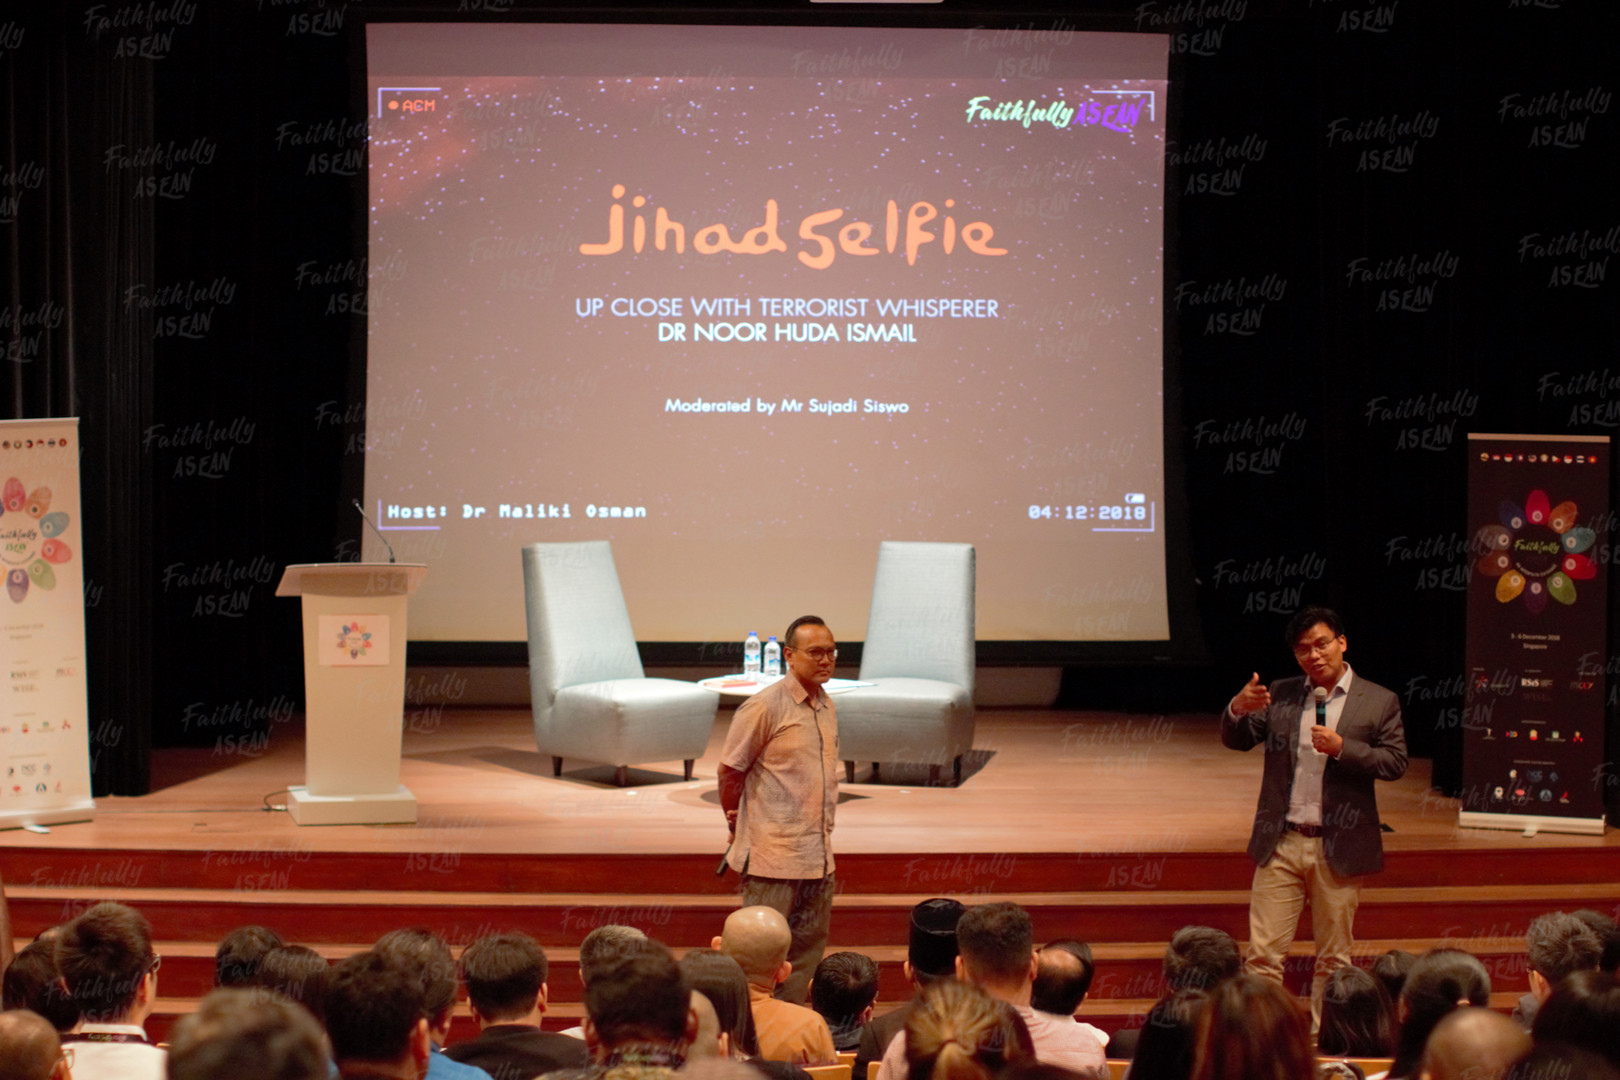 'Jihad Selfie' is an original film documentation by Dr Noor Huda Ismail in his efforts to follow, explore and uncover the allures of the ISIS movement and varying motivations behind aspiring male jihadists, in their desire to join the terror group.  Dr Huda is a visiting fellow at RSIS.  The film screening was supplemented by a forum to help the FA participants better understand the topic and elements relating to radicalisation.